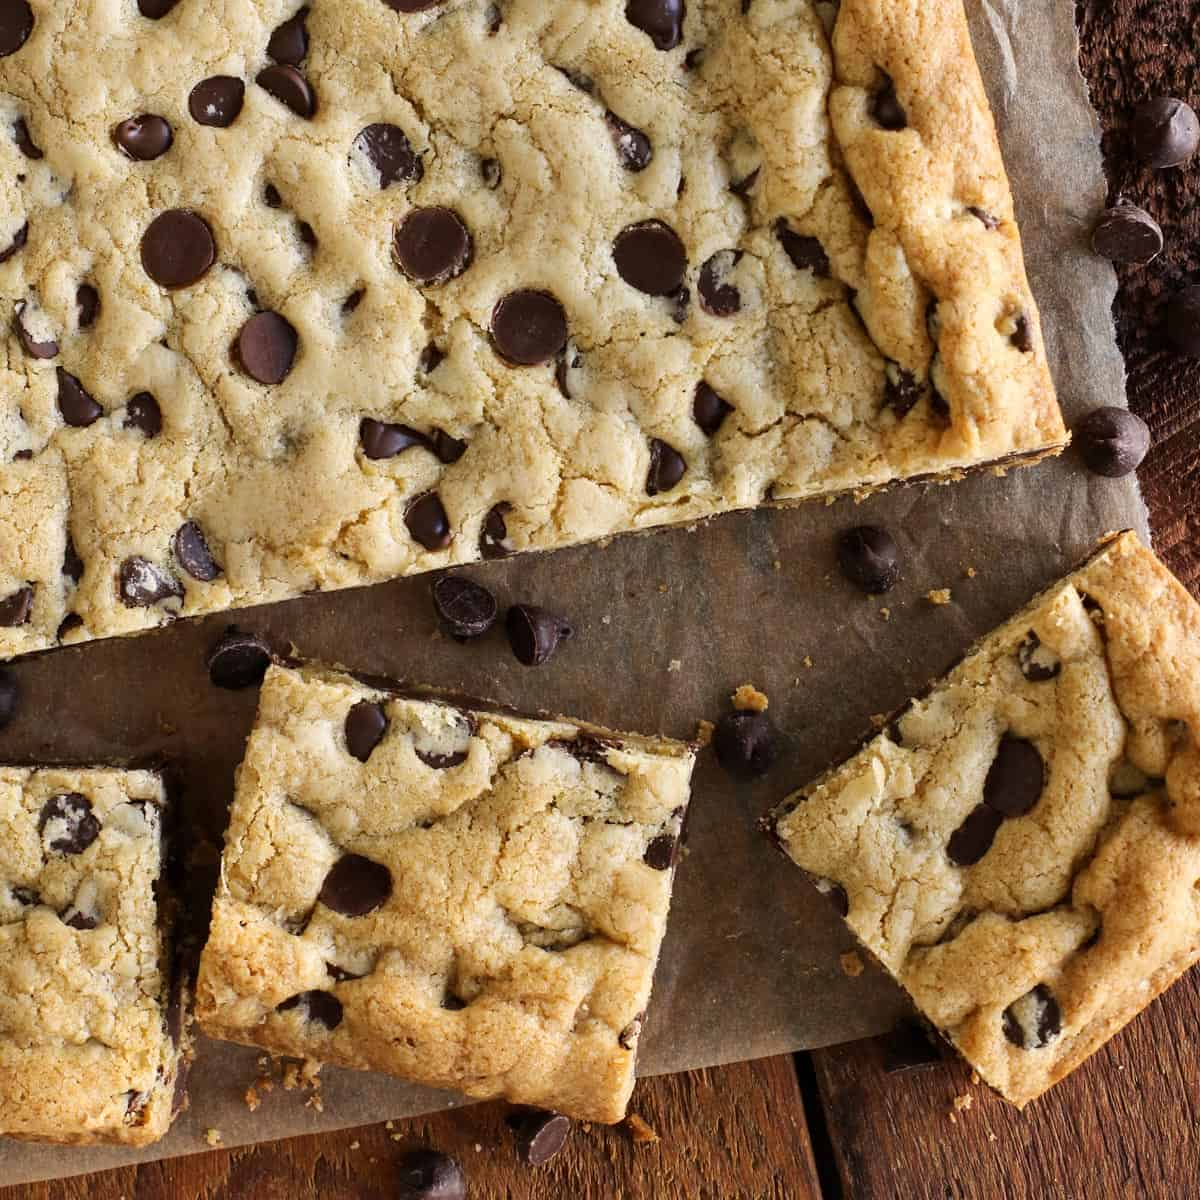 Sheet Pan Chewy Chocolate Chip Cookie Bars